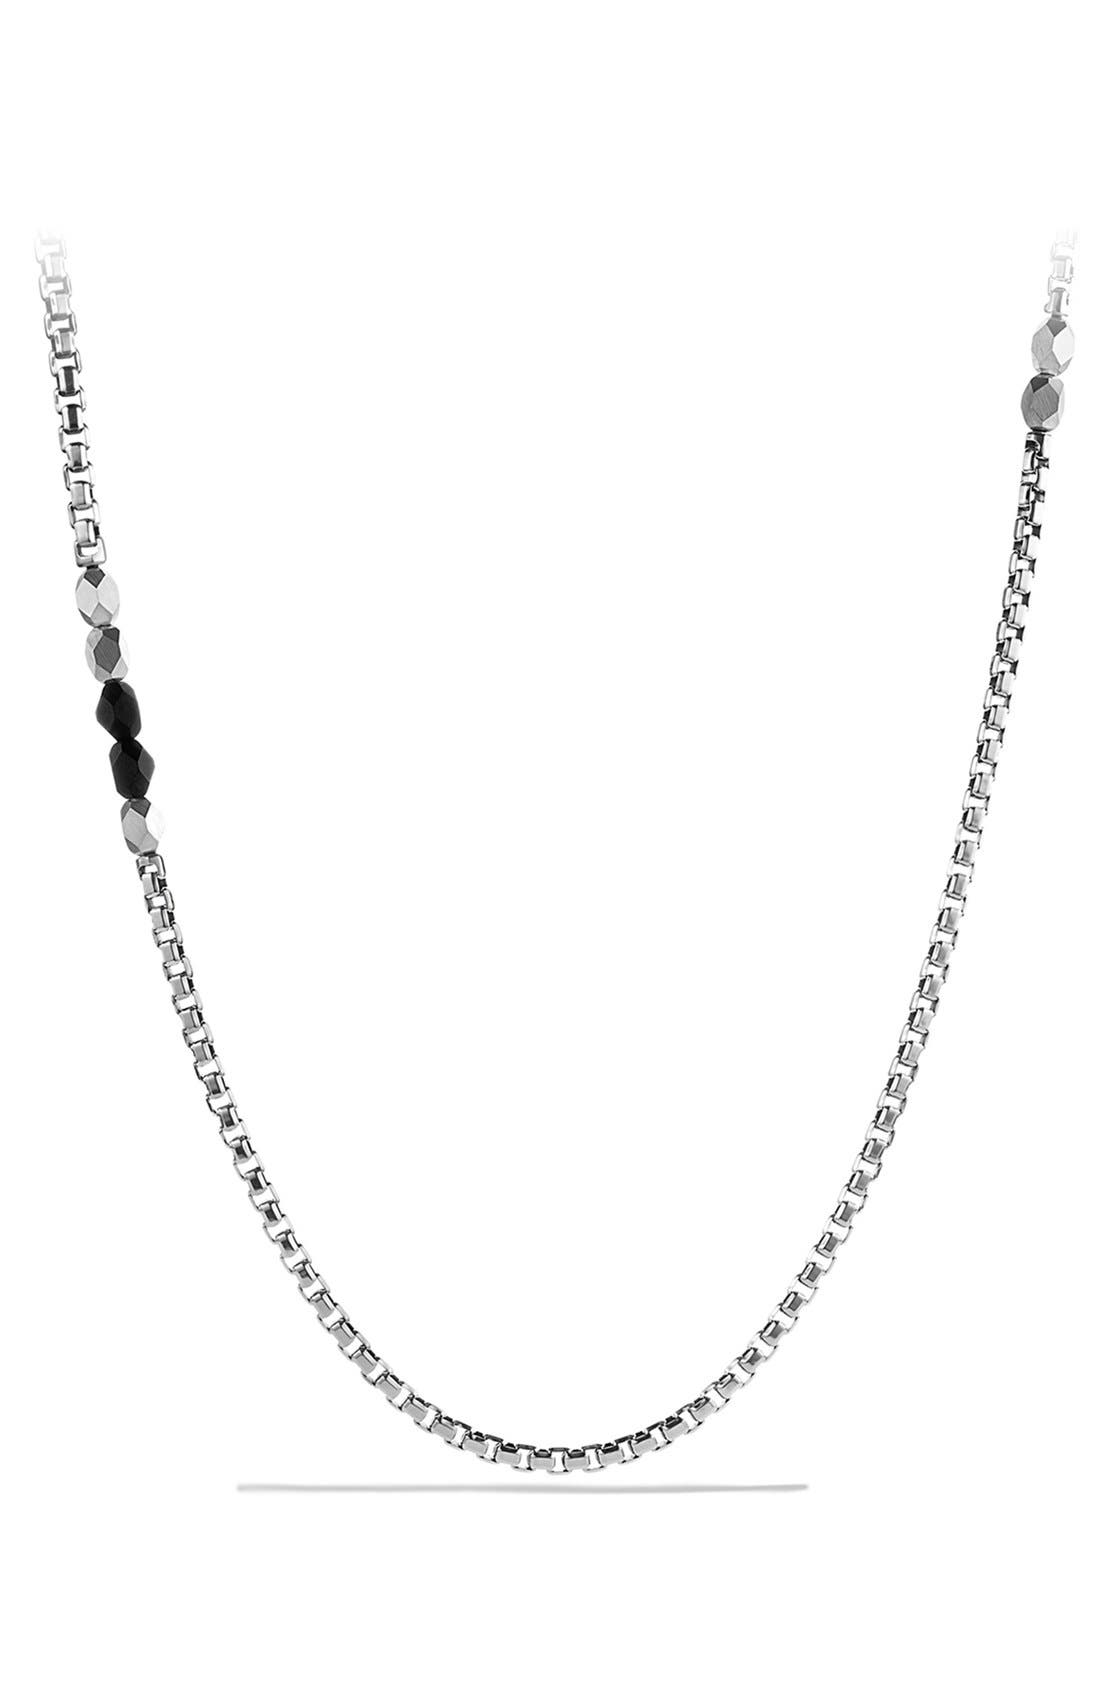 DAVID YURMAN 'Faceted' Metal Necklace